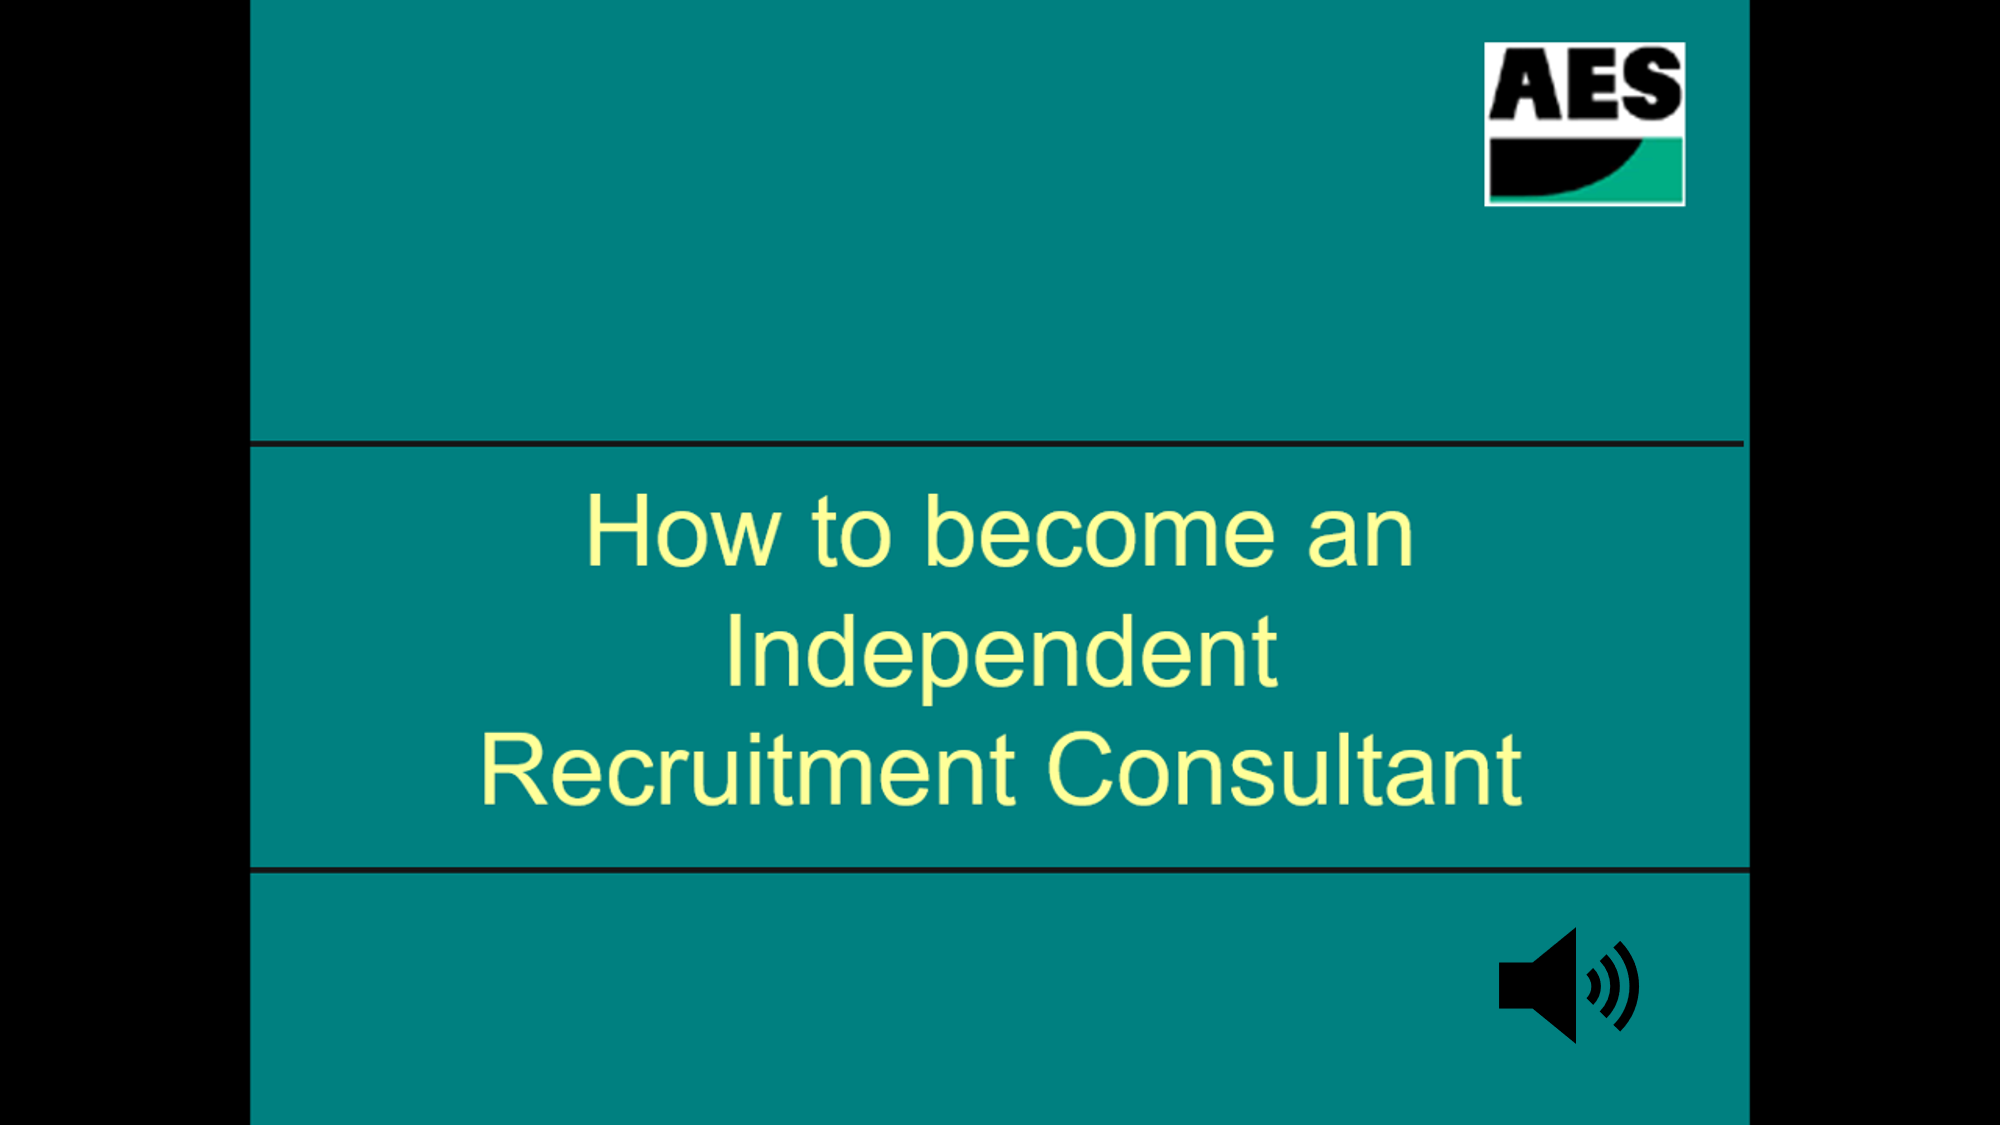 How to become an Independent Recruitment Consultant